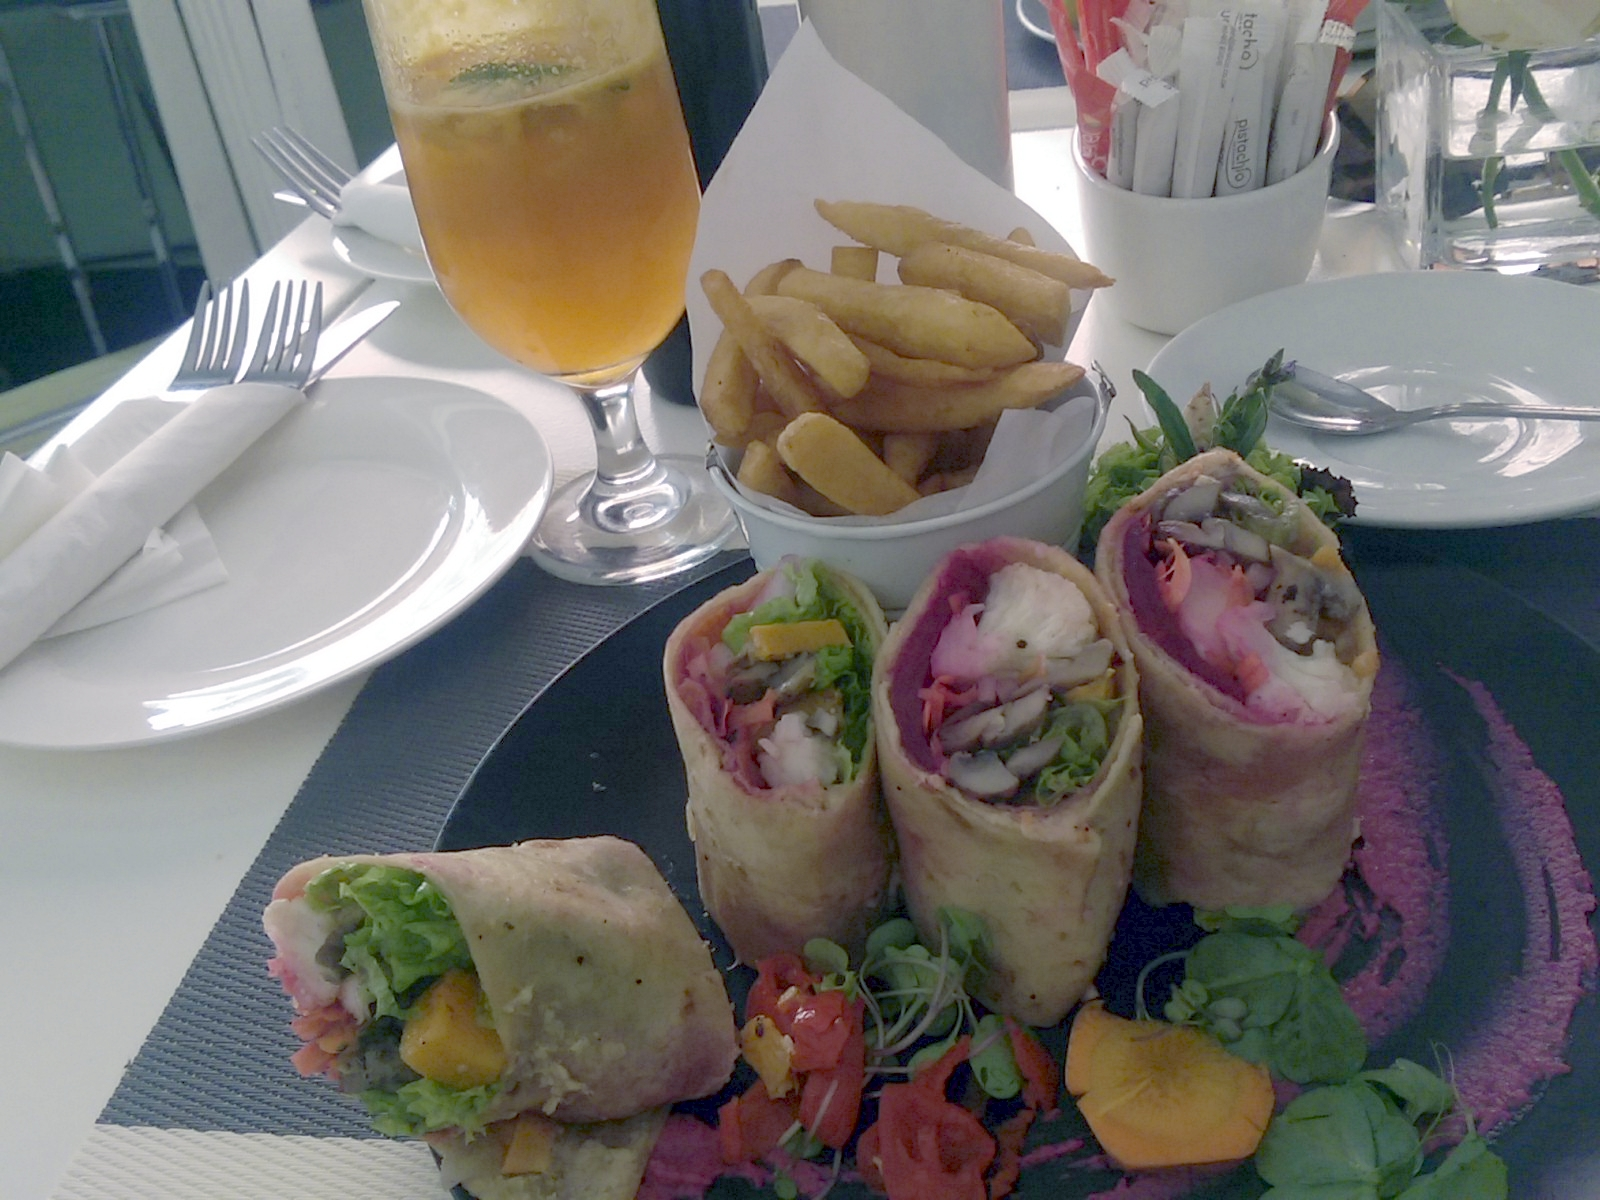 A plate with four small vegetable wraps, three on end, one fallen over, with a bowl of chips and a glass of apple juice behind them